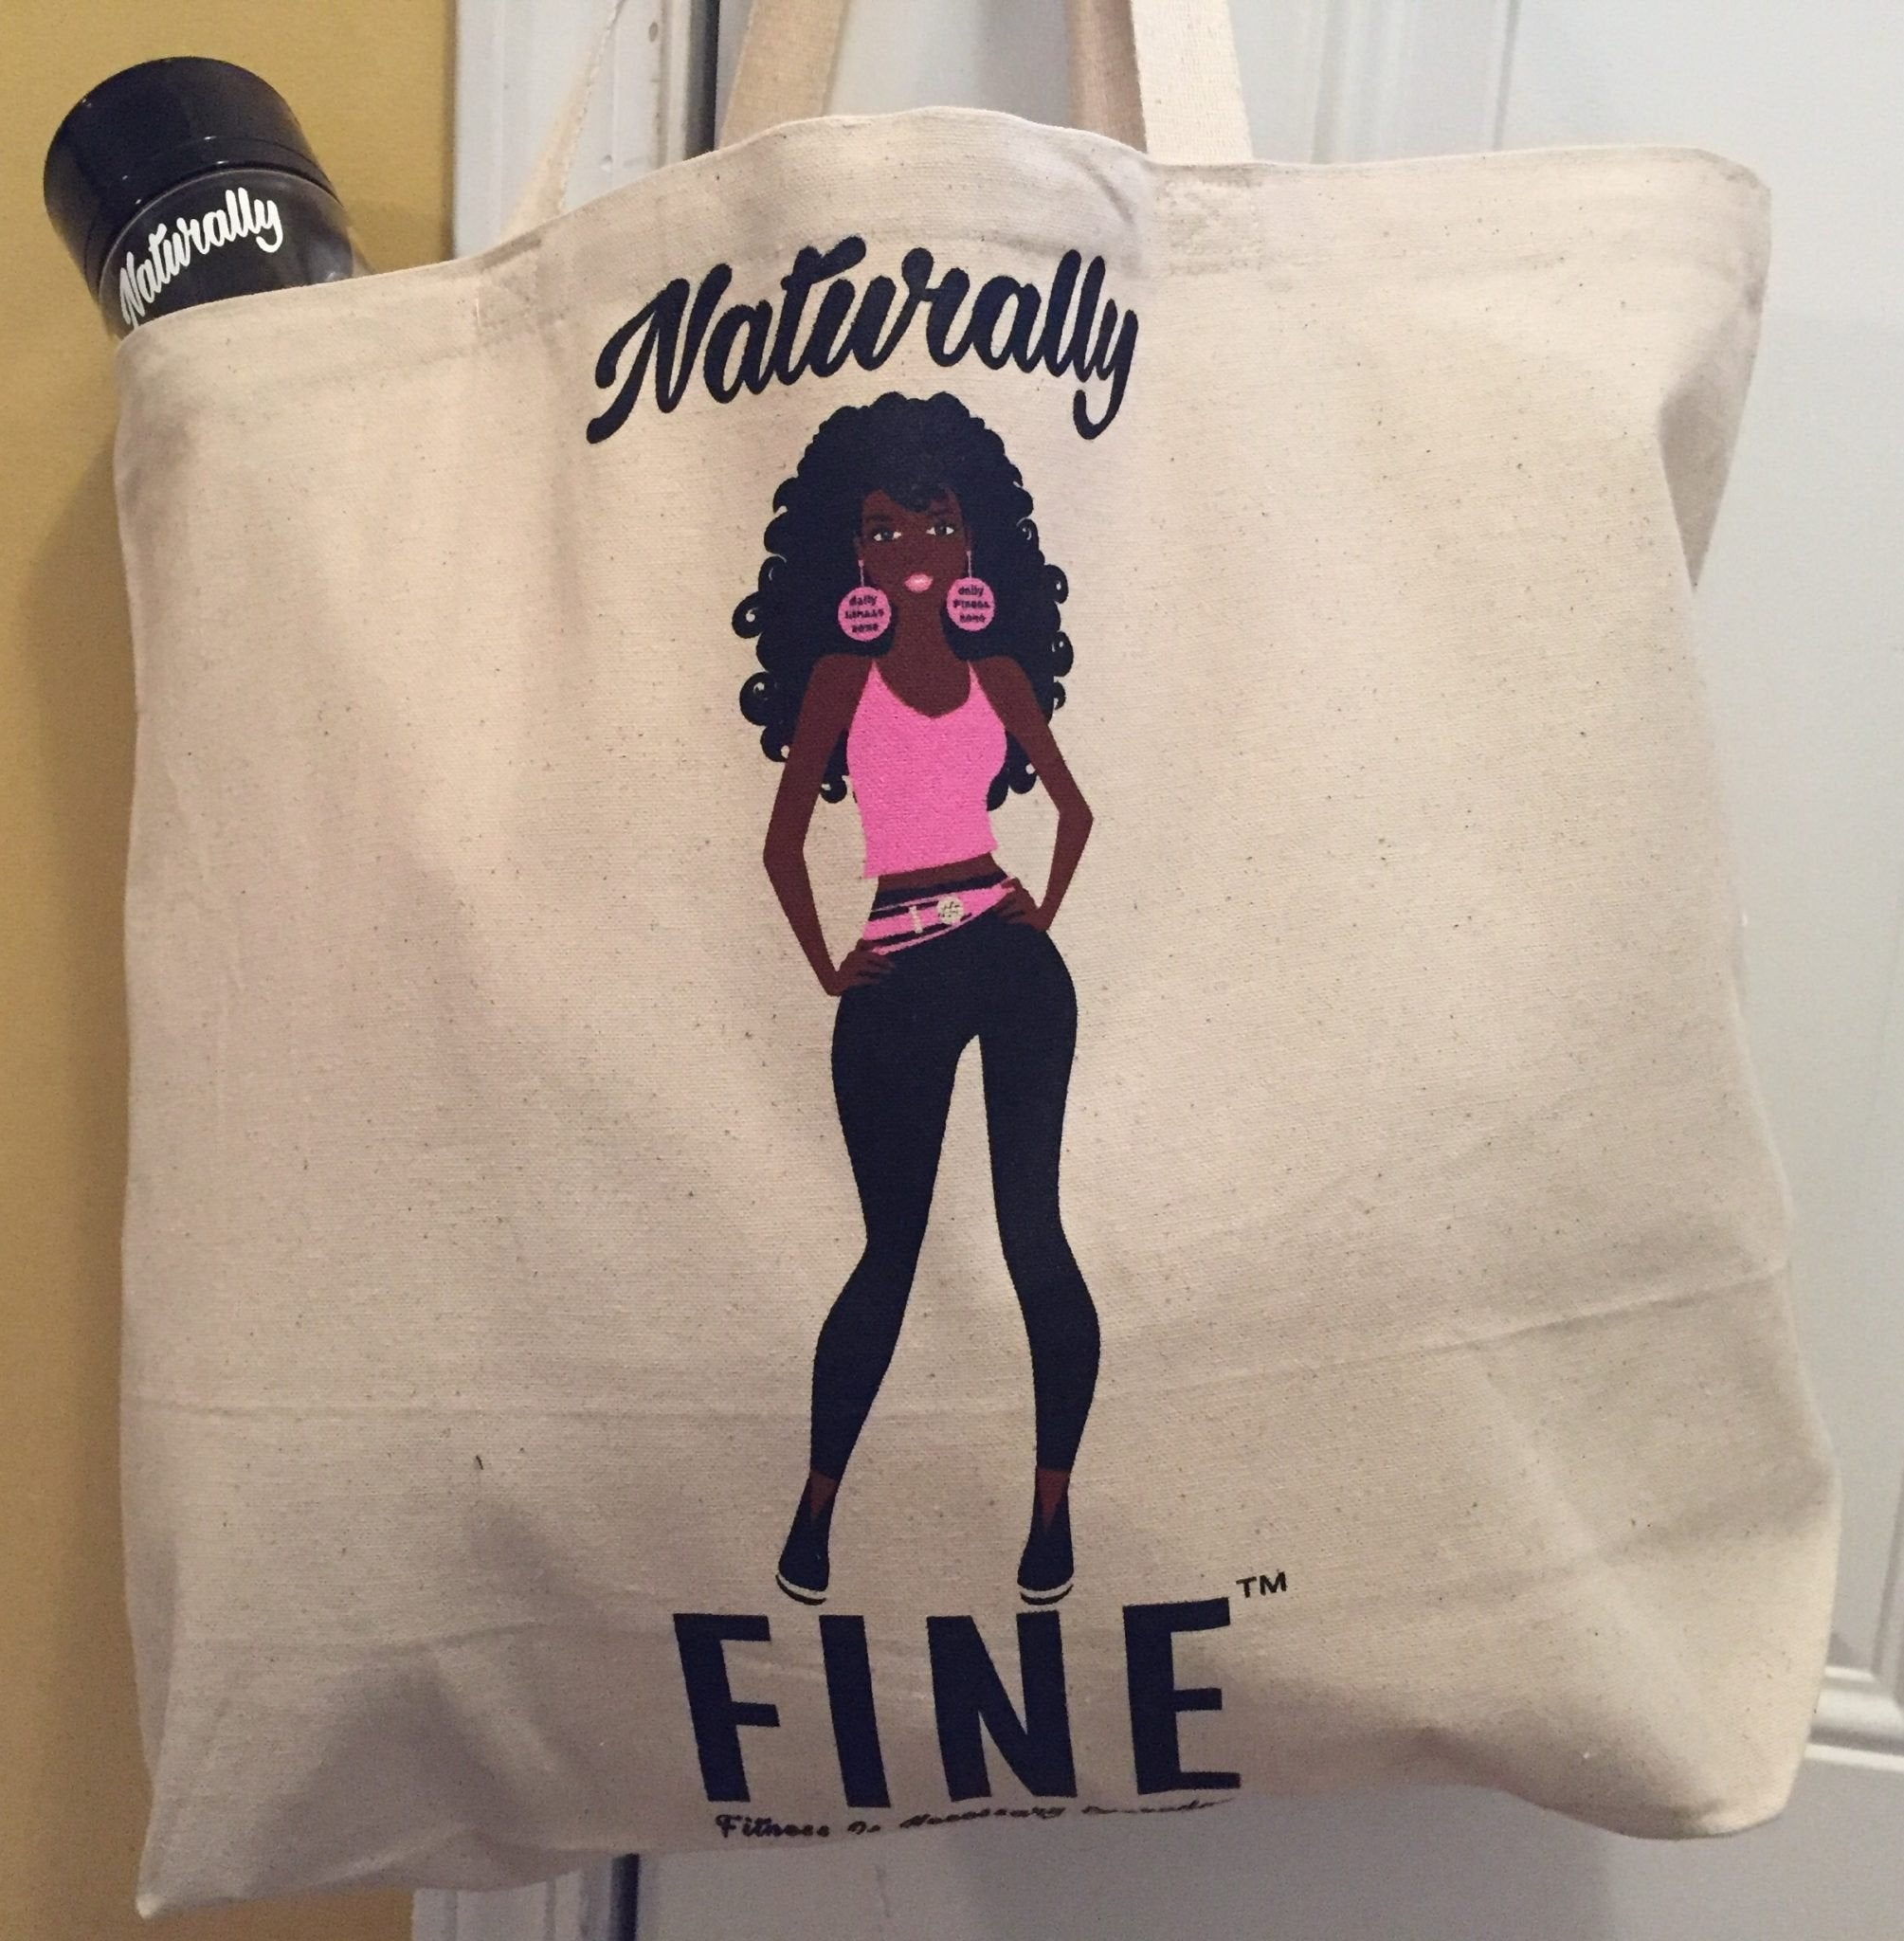 Naturally FINE Jumbo Tote Bag